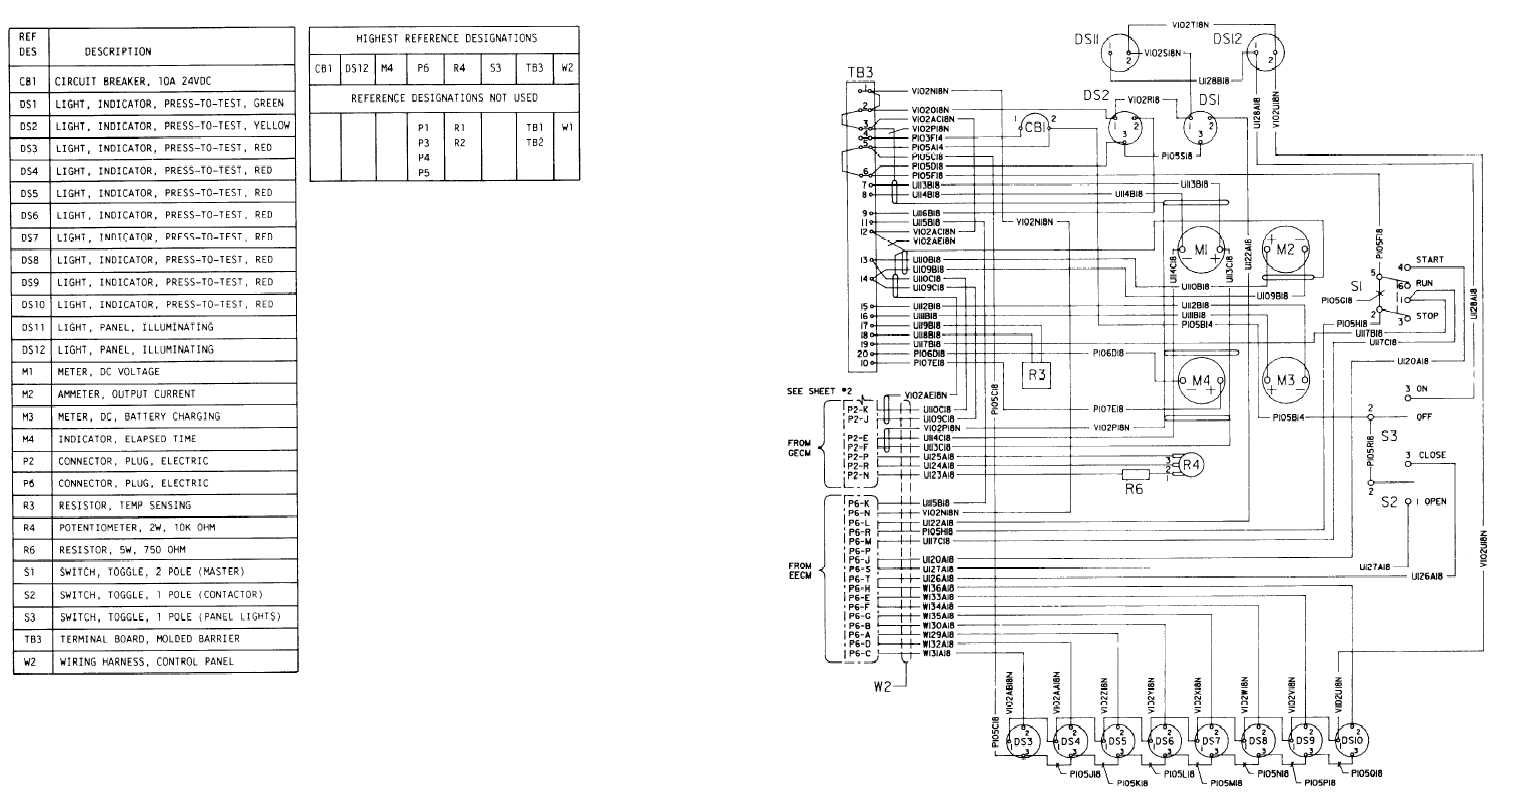 Industrial Control Panel Wiring Diagram Trusted Diagrams Electrical Service Schematic Drawing Work U2022